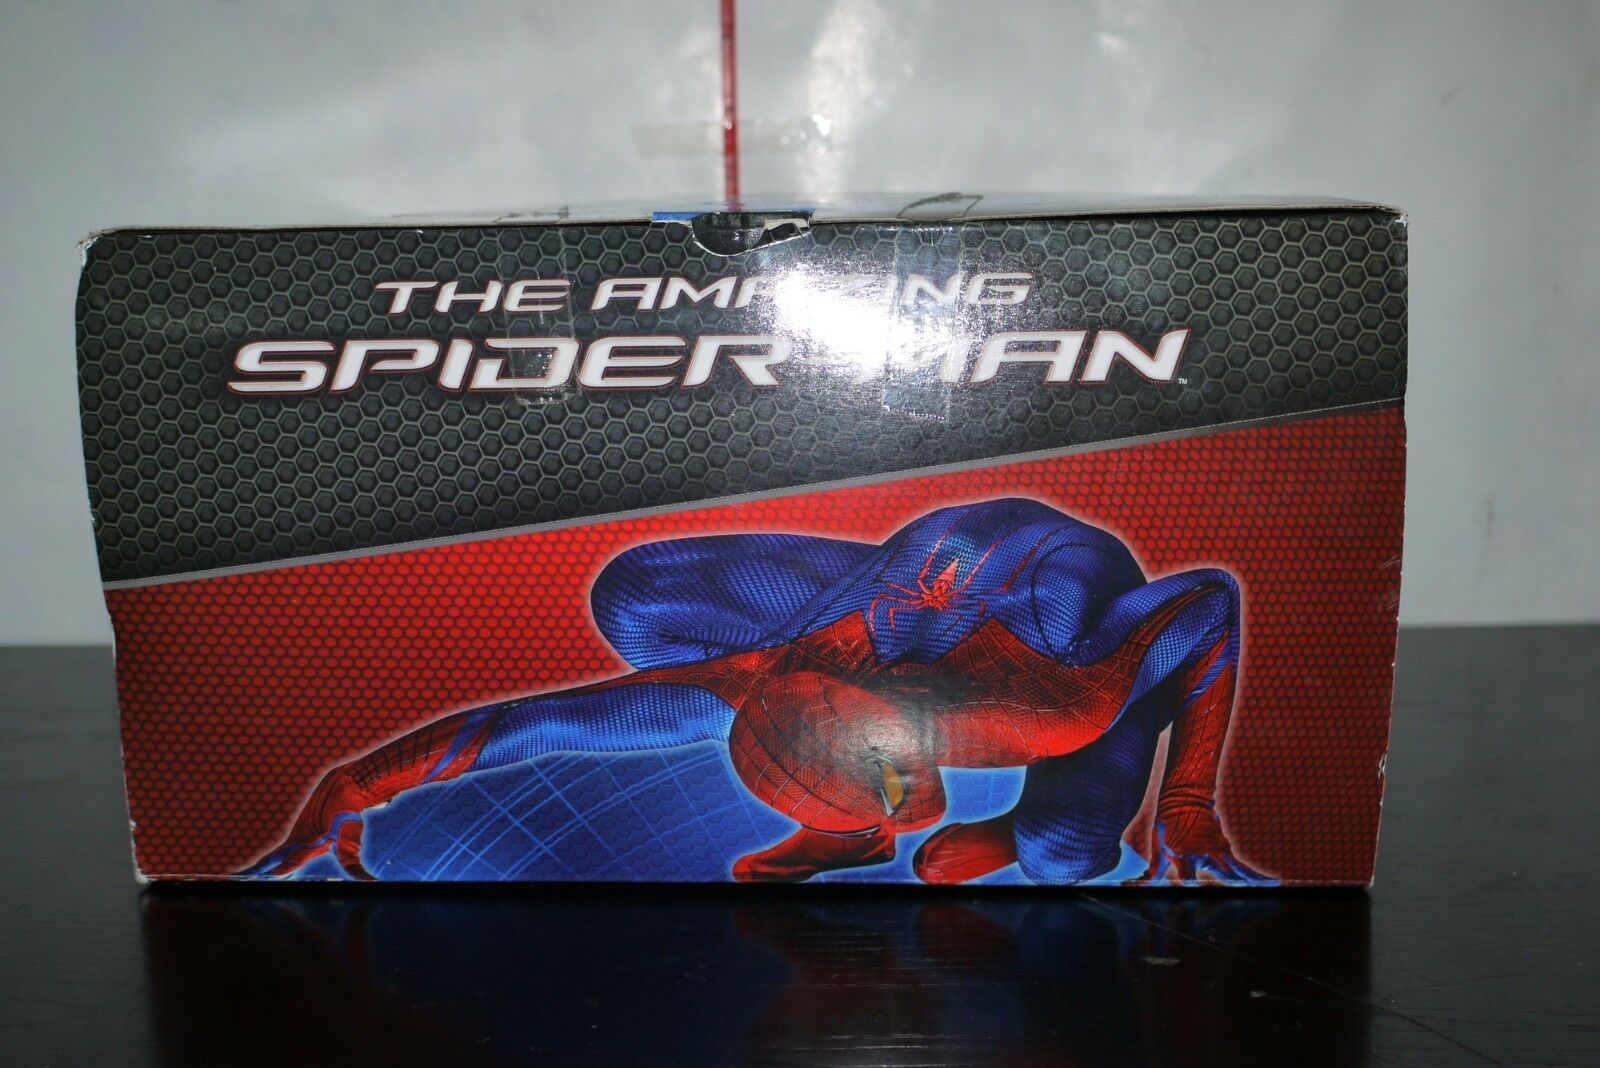 Diamond Select The Amazing Spider-Man Limited Edition Movie Statue Statue Statue 1113 2012 4ace00